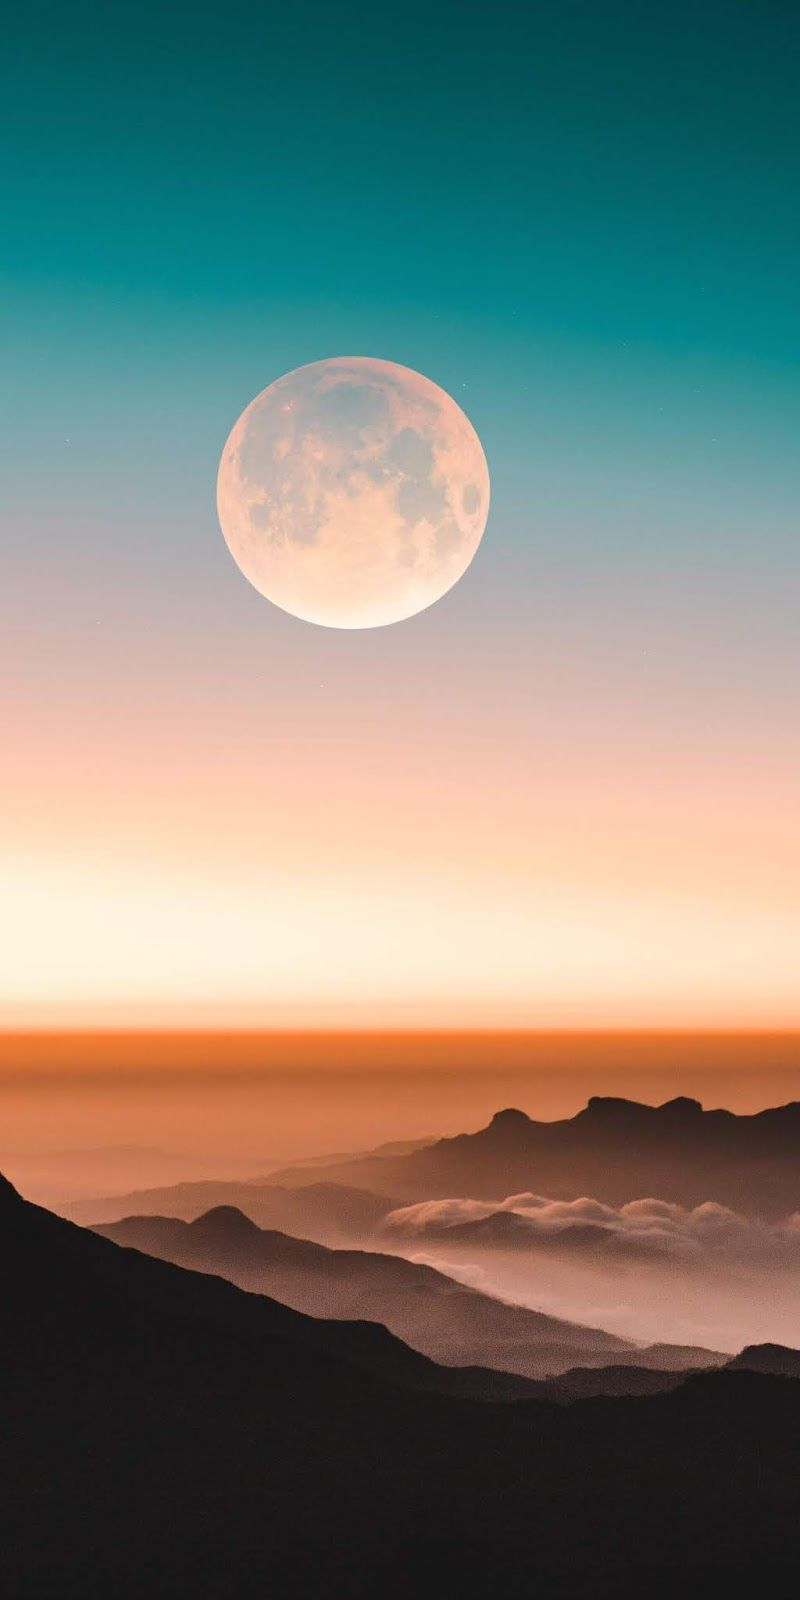 Full Moon Wallpaper Iphone Android Background Followme Scenic Wallpaper Beautiful Wallpapers Cellphone Wallpaper